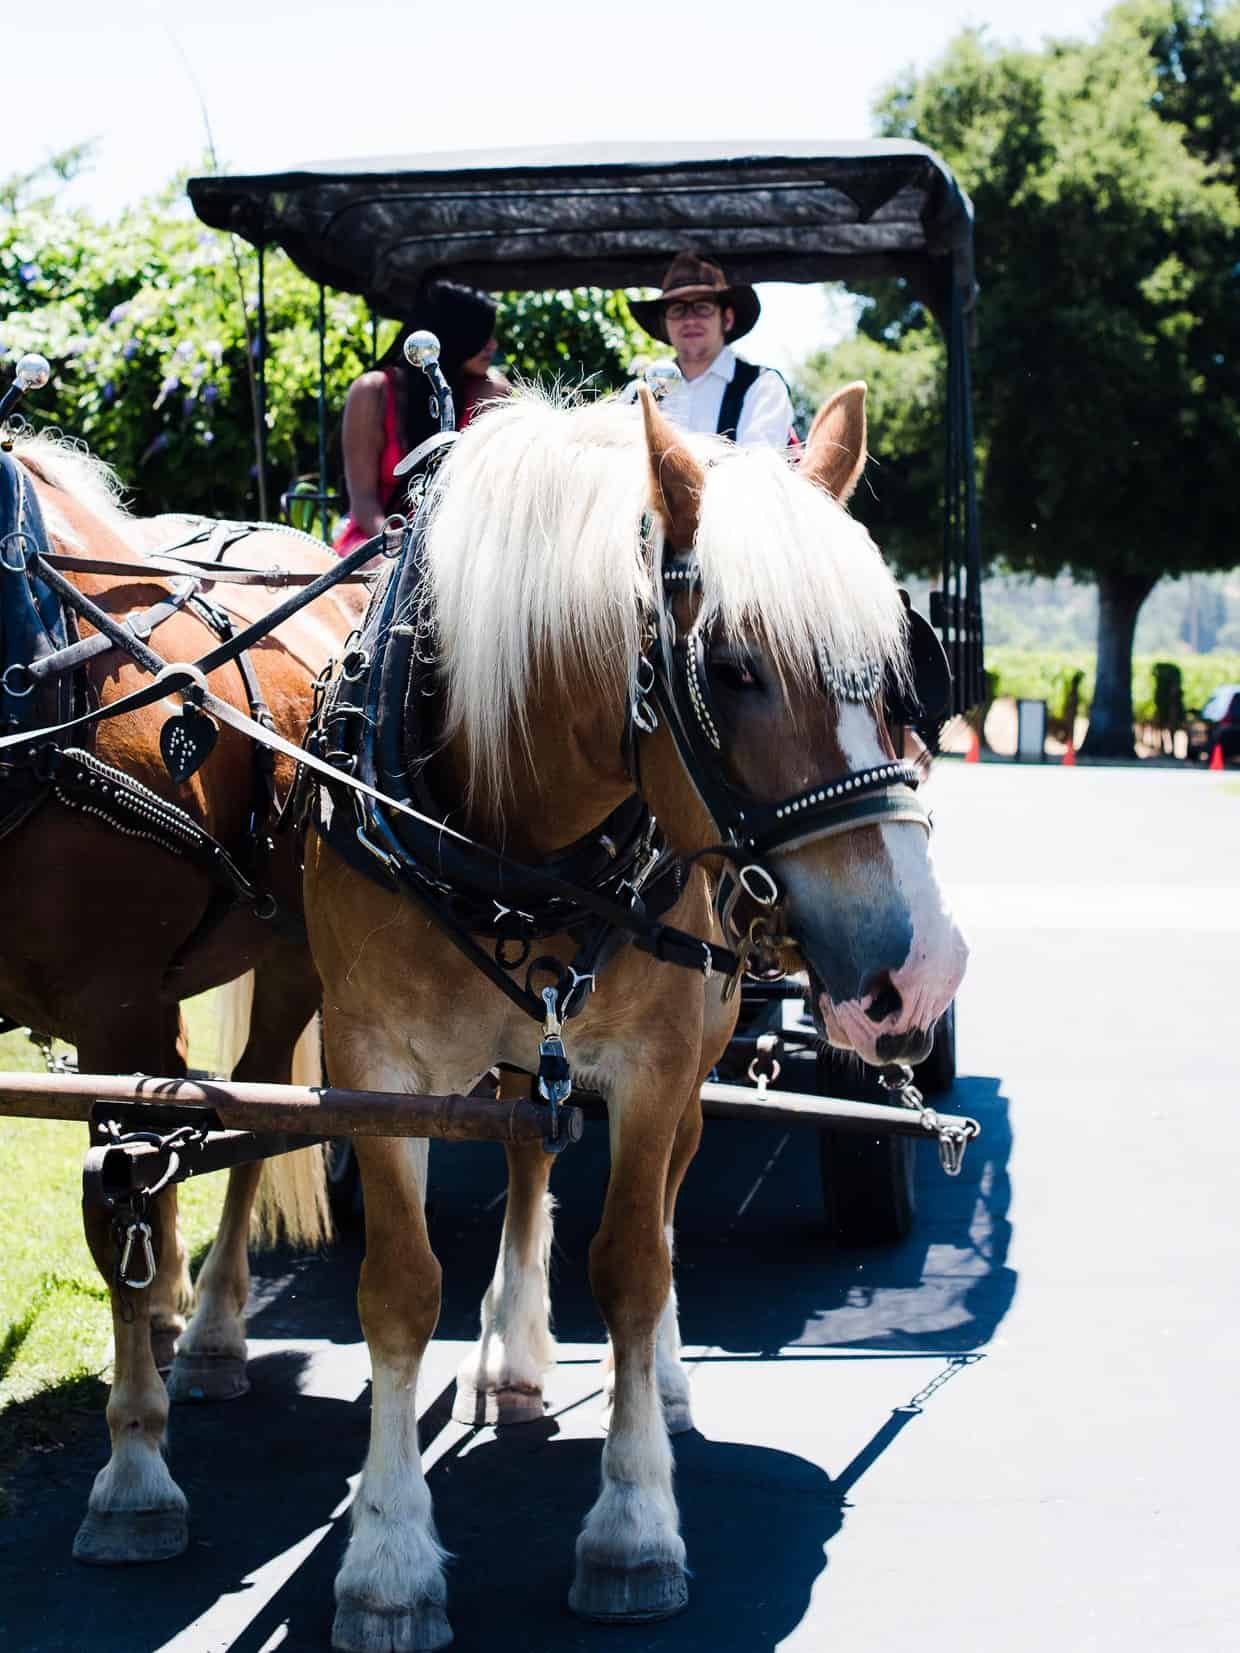 A horse drawn carriage tour is one way to explore Landmark Vineyards.